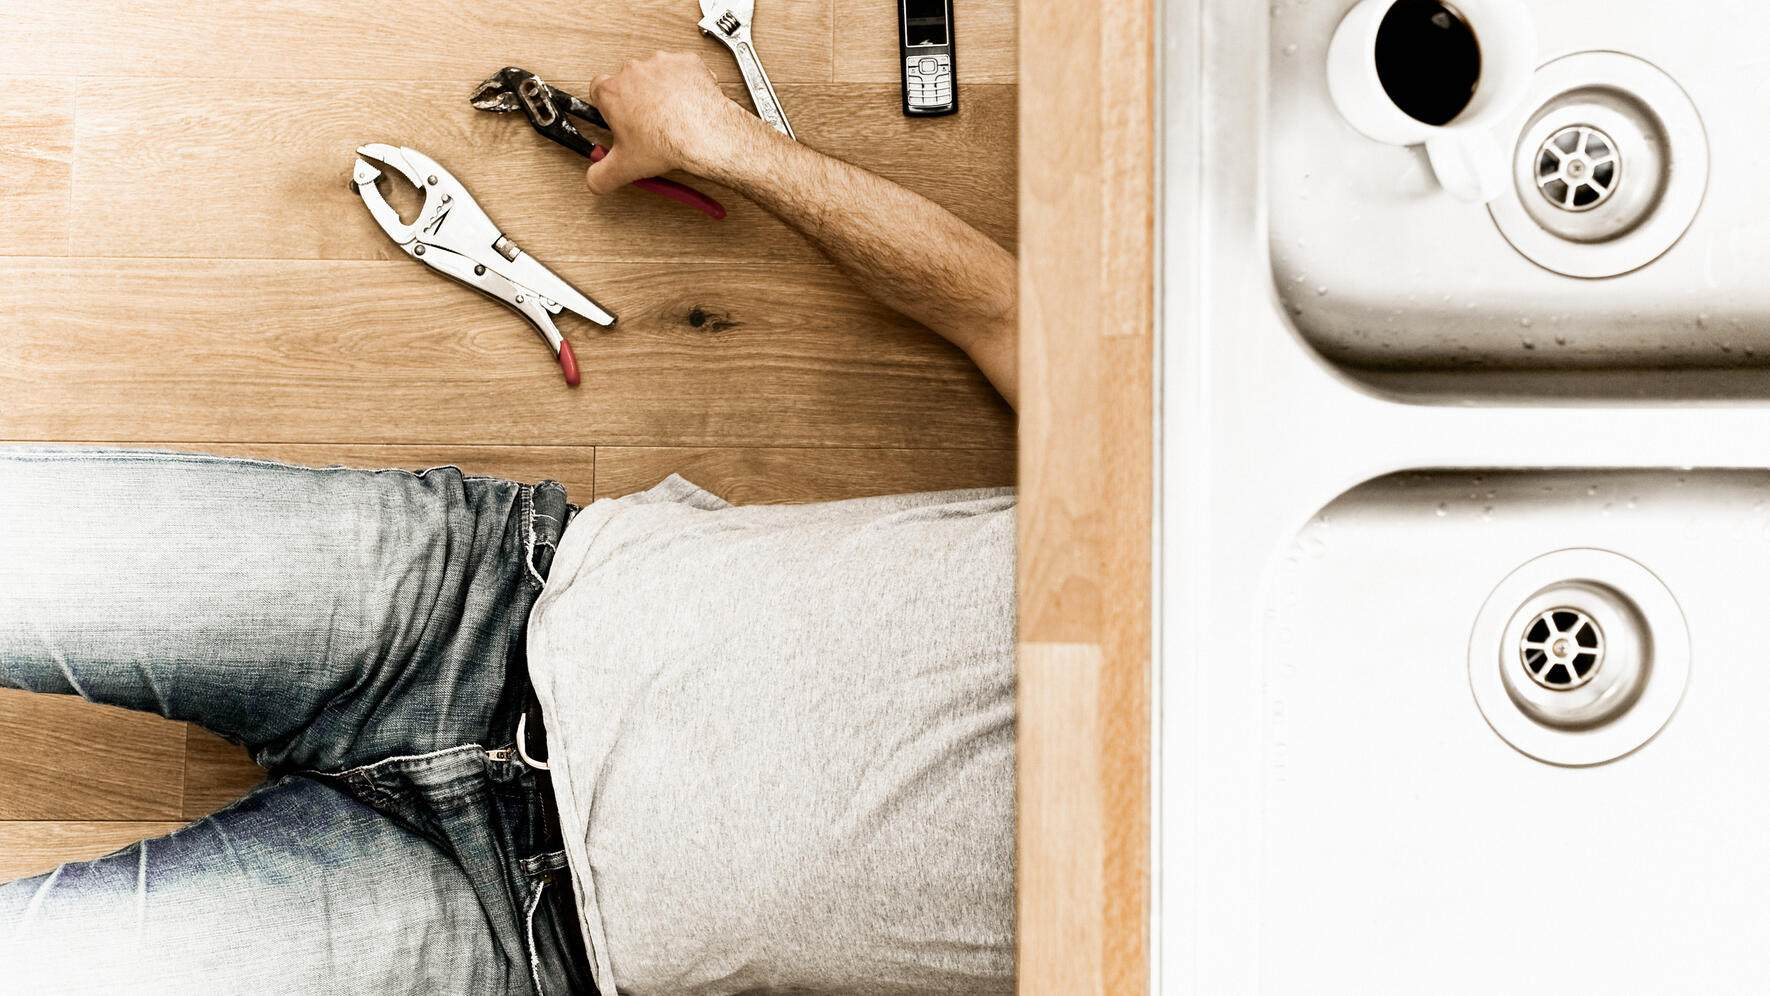 Plumber laying on floor under sink with tools and mobile phone